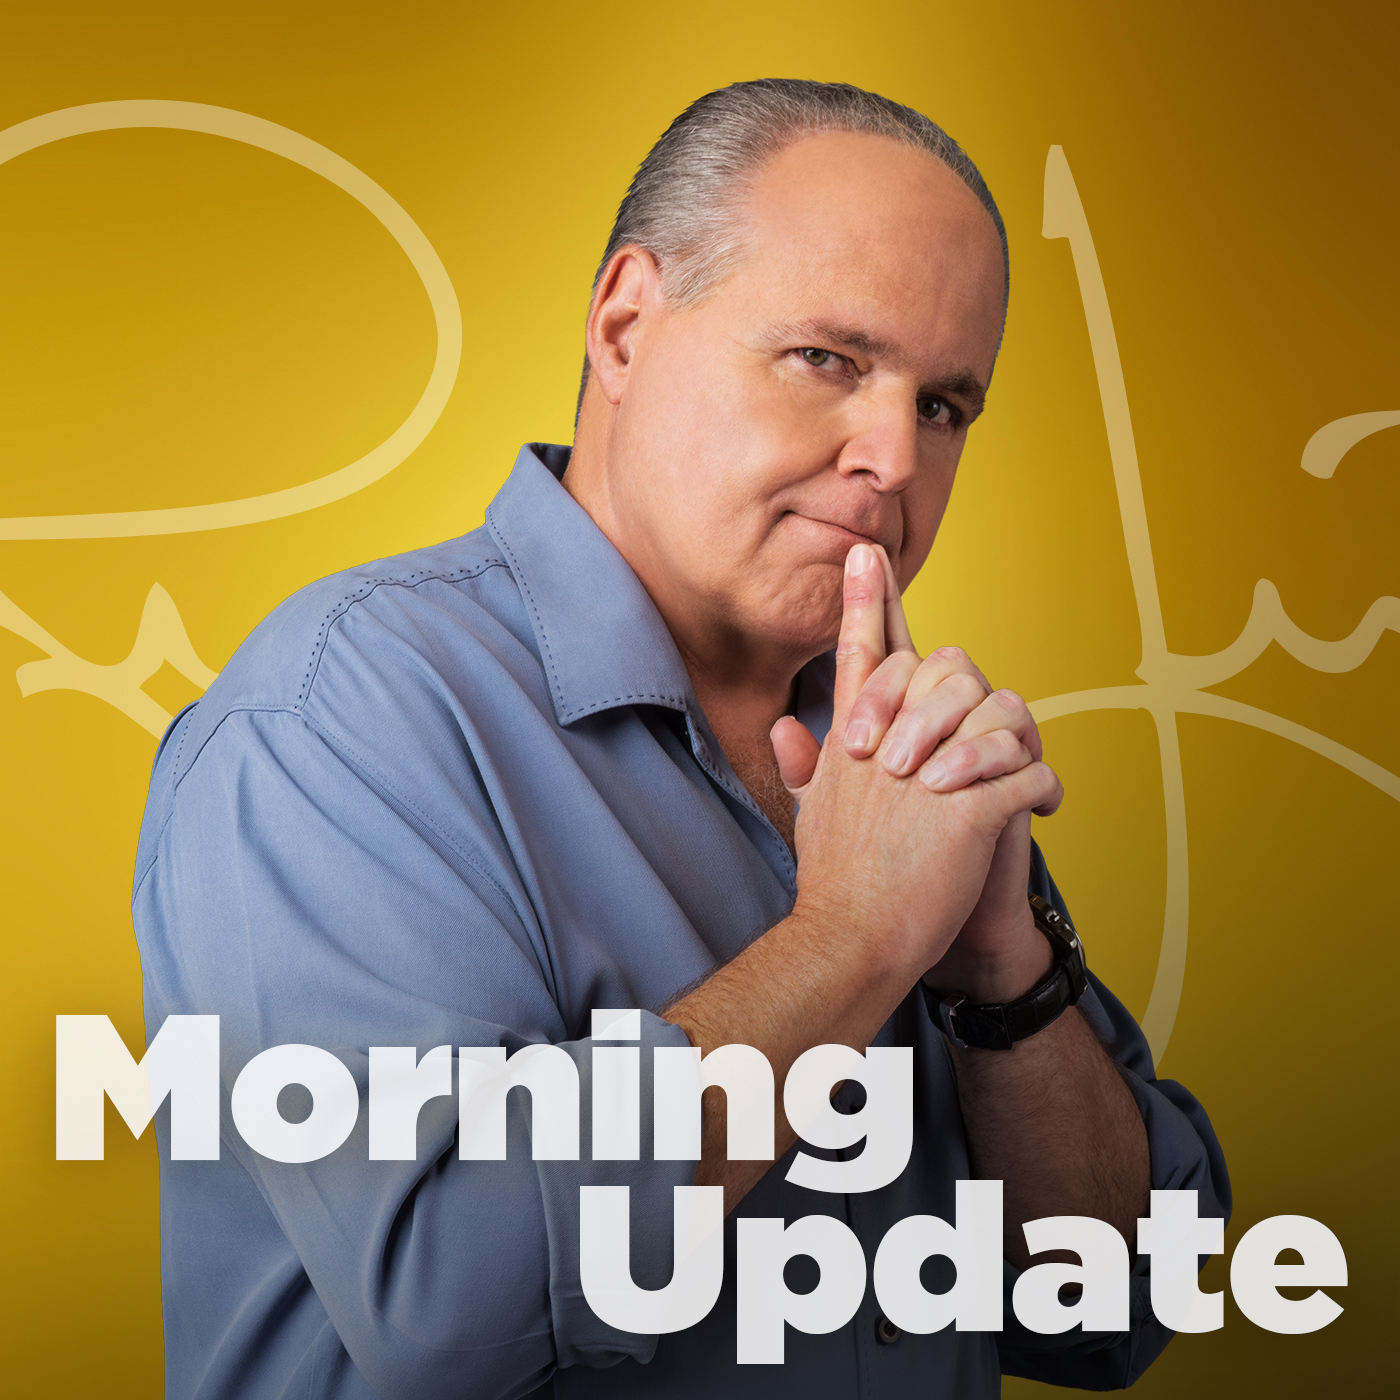 Rush Limbaugh Jan 02, 2020